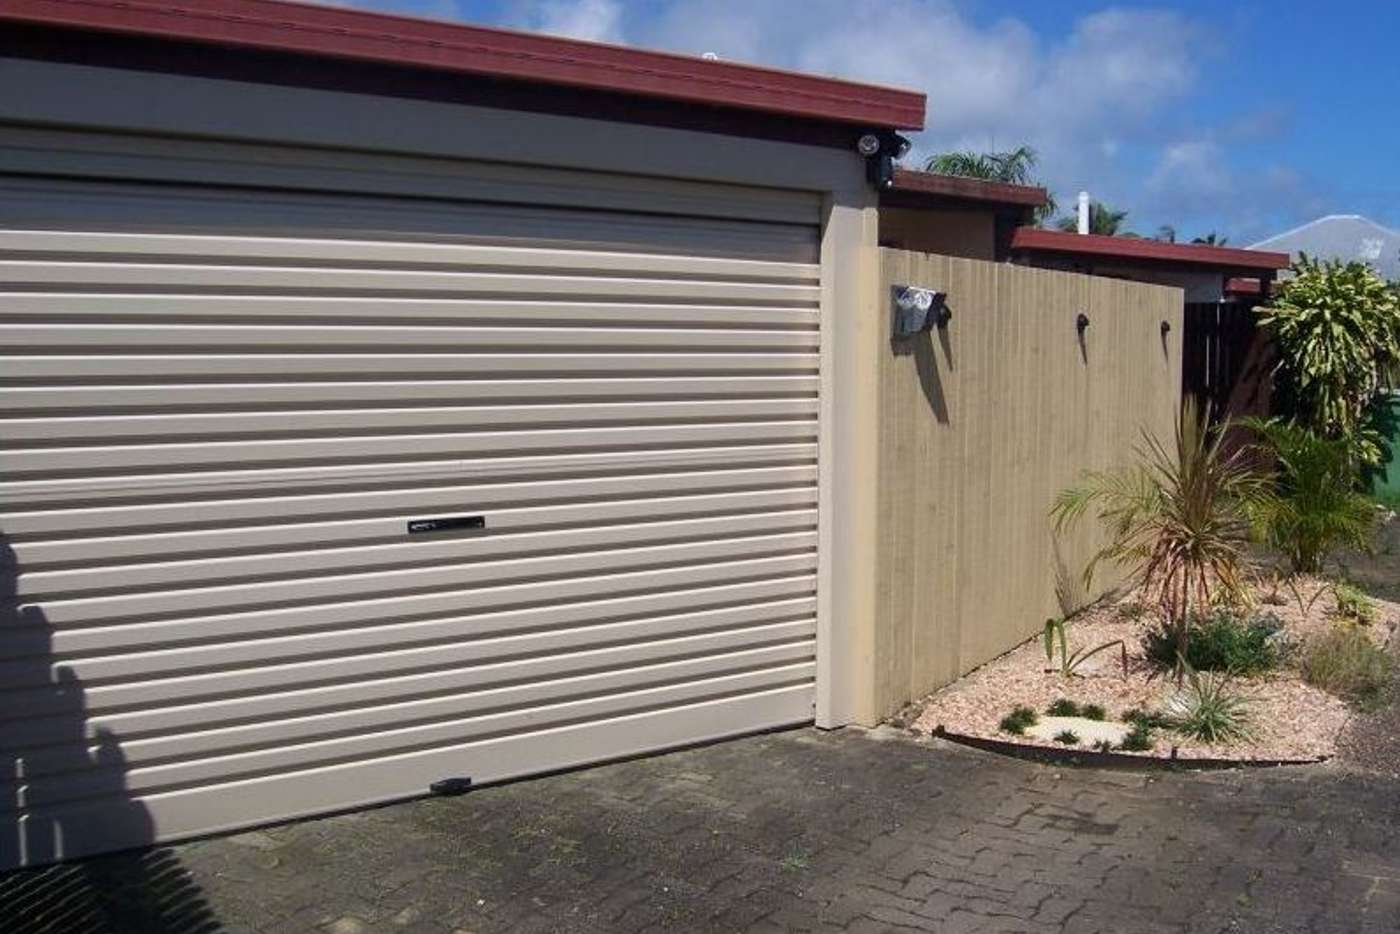 Main view of Homely unit listing, 6/11 PROSPECT STREET, Mackay QLD 4740